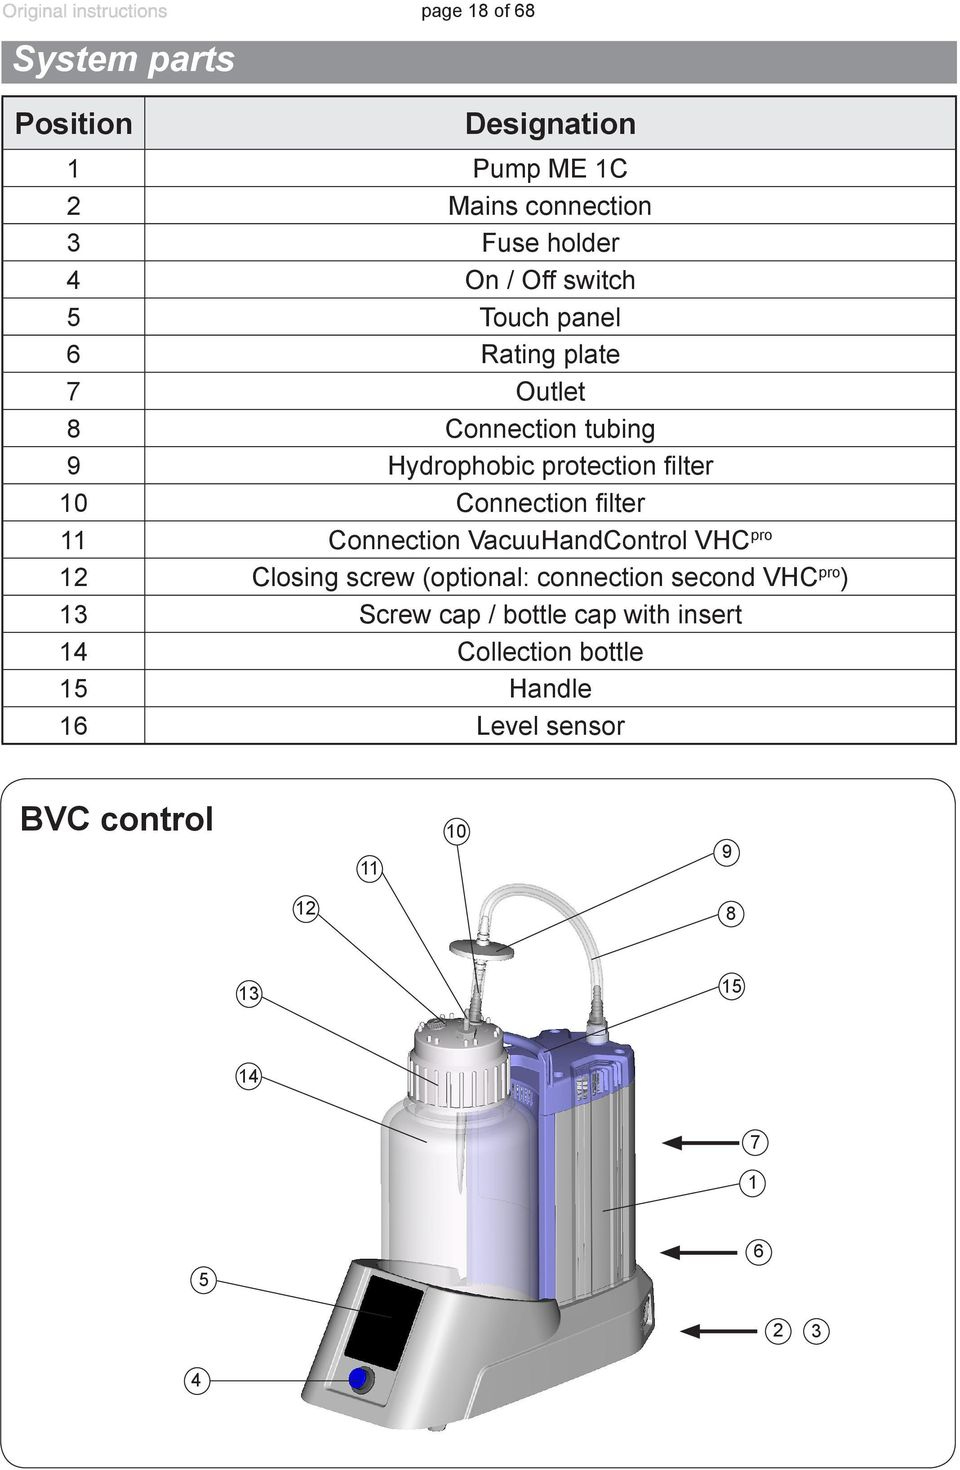 11 Connection VacuuHandControl VHC pro 12 Closing screw (optional: connection second VHC pro ) 13 Screw cap /